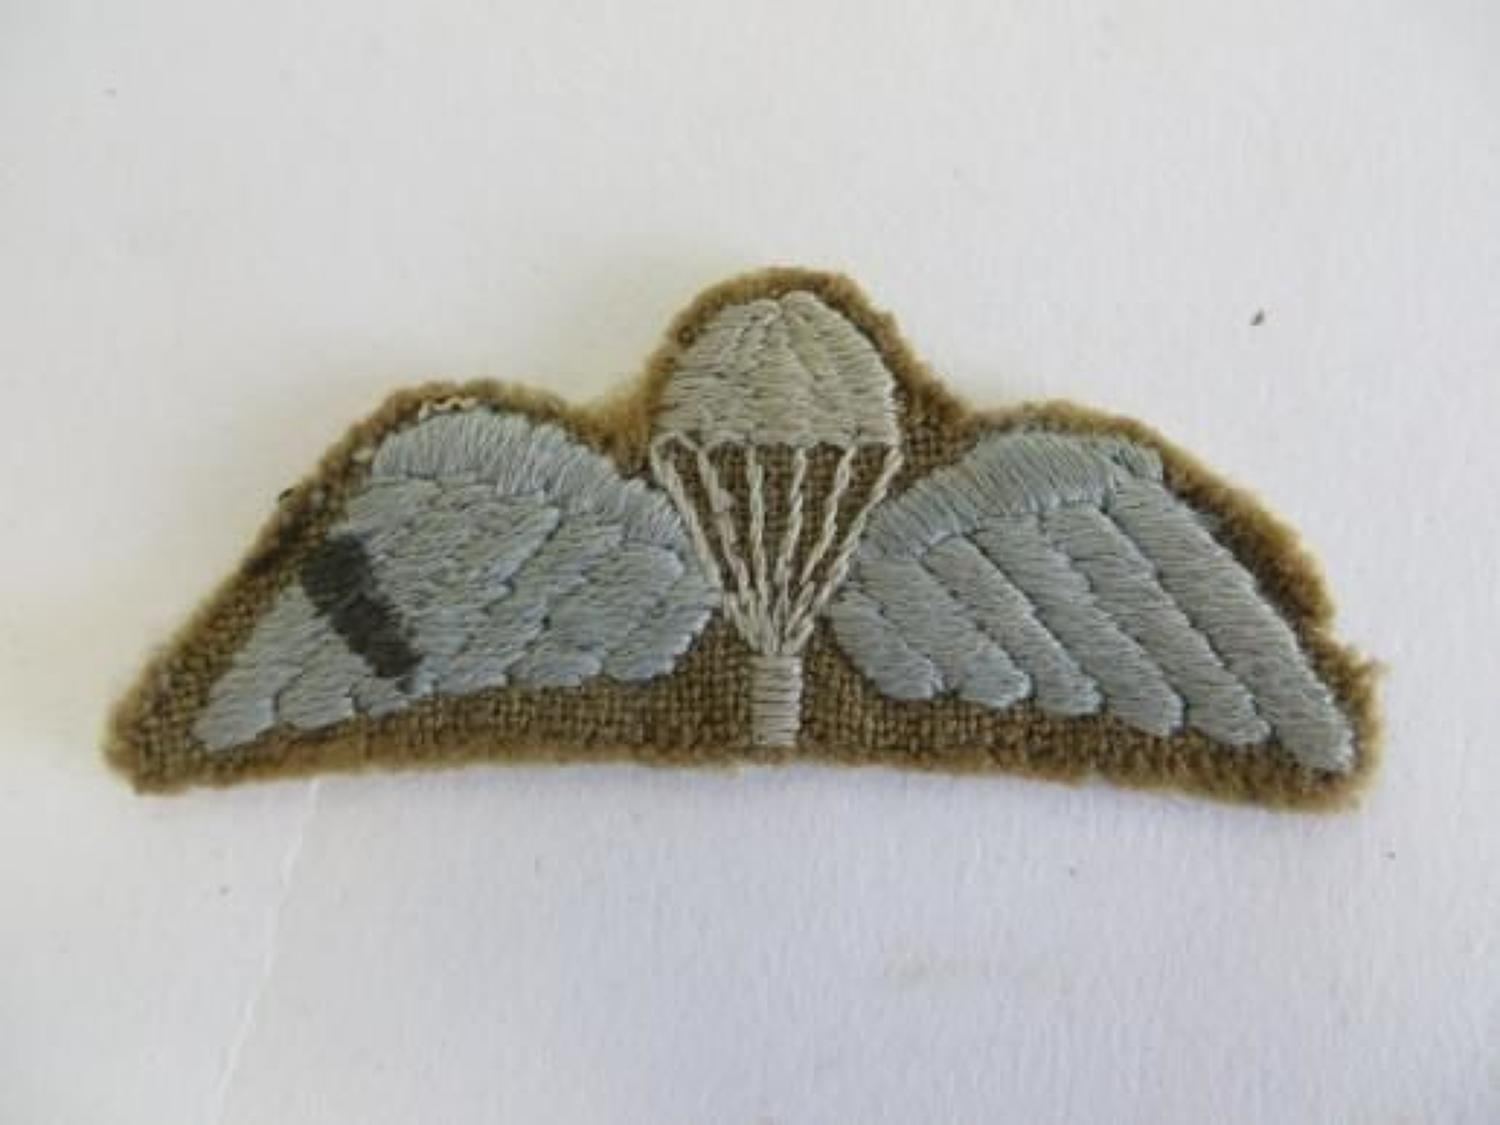 WW2 Airborne Parachute Wings